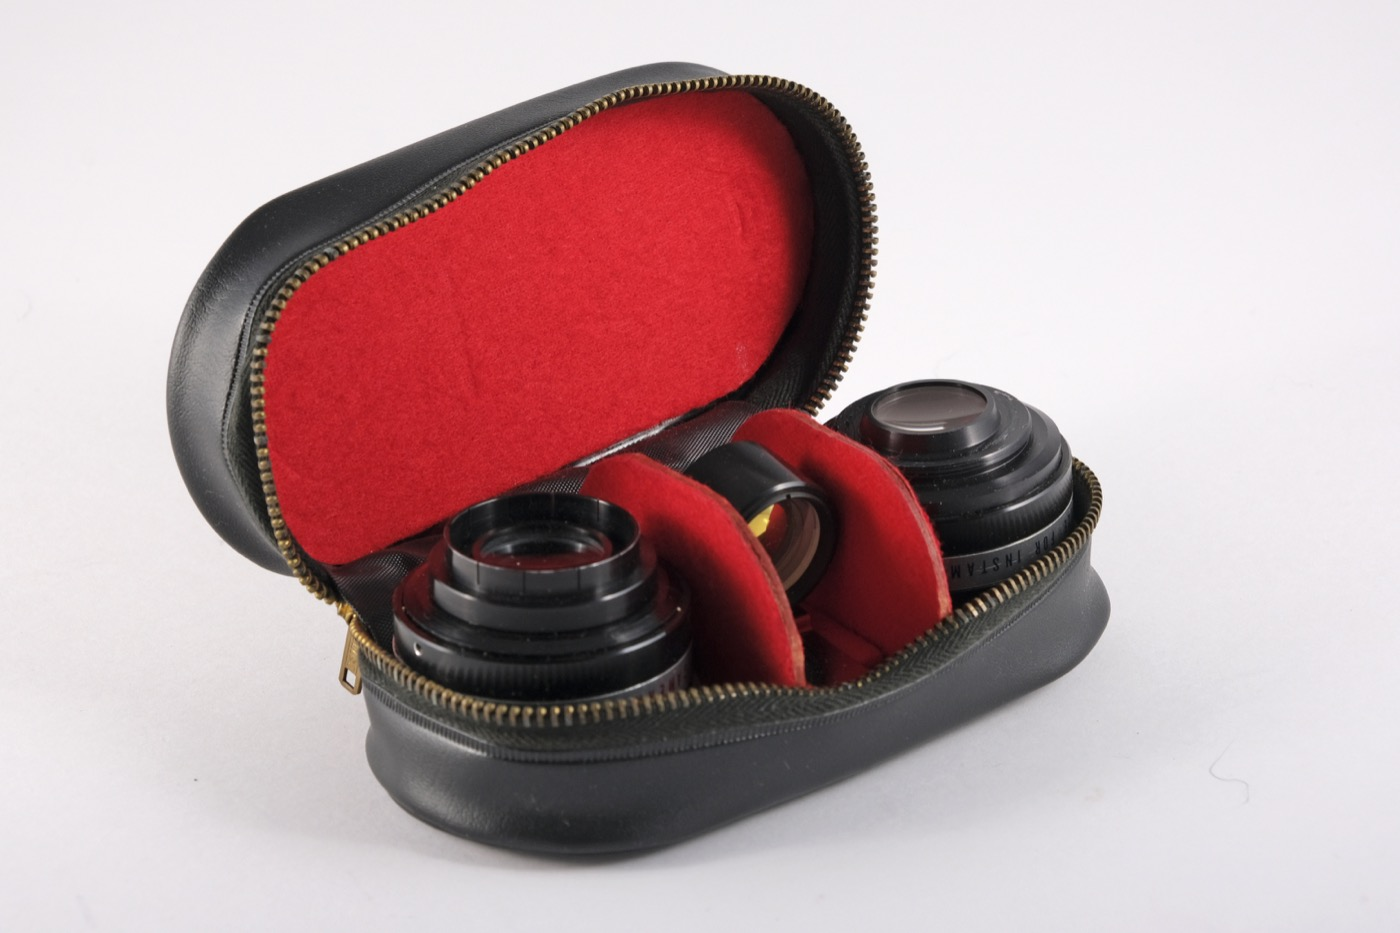 Auxiliary lenses and finder for Kodak instamatic cameras